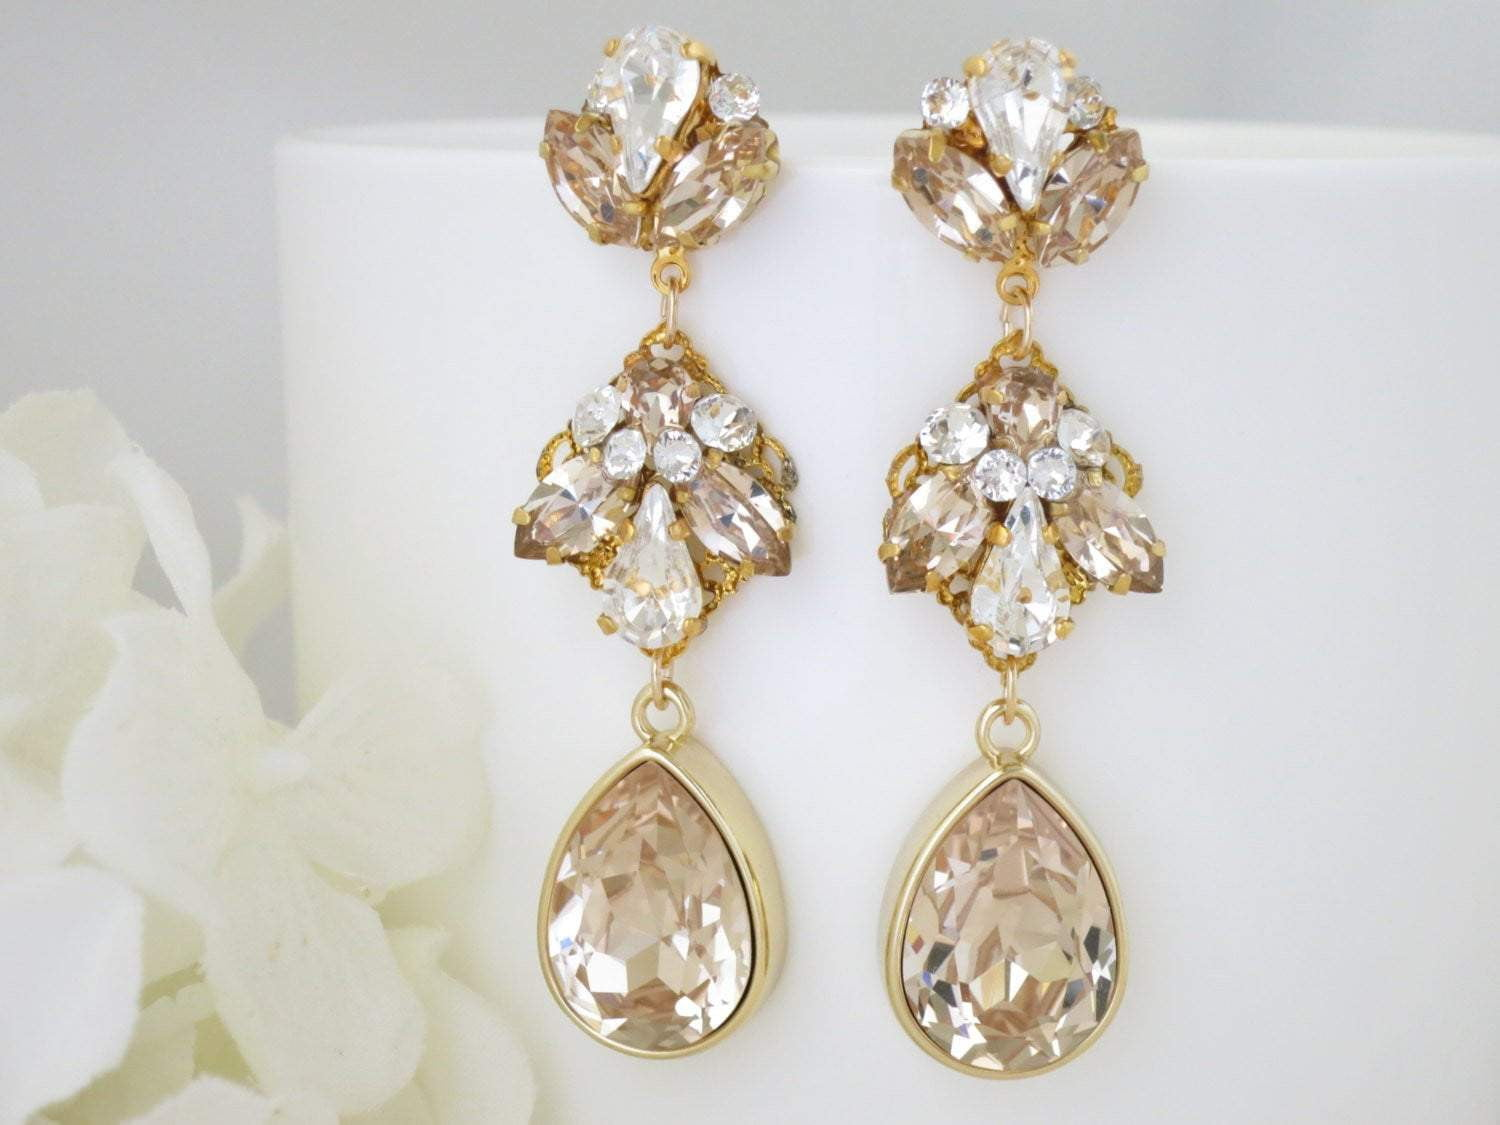 KENNEDY:  Champagne Teardrop Statement Earrings - BlingBaddaBoom - Minimalist, Vintage, Modern Wedding and Bridal Jewelry